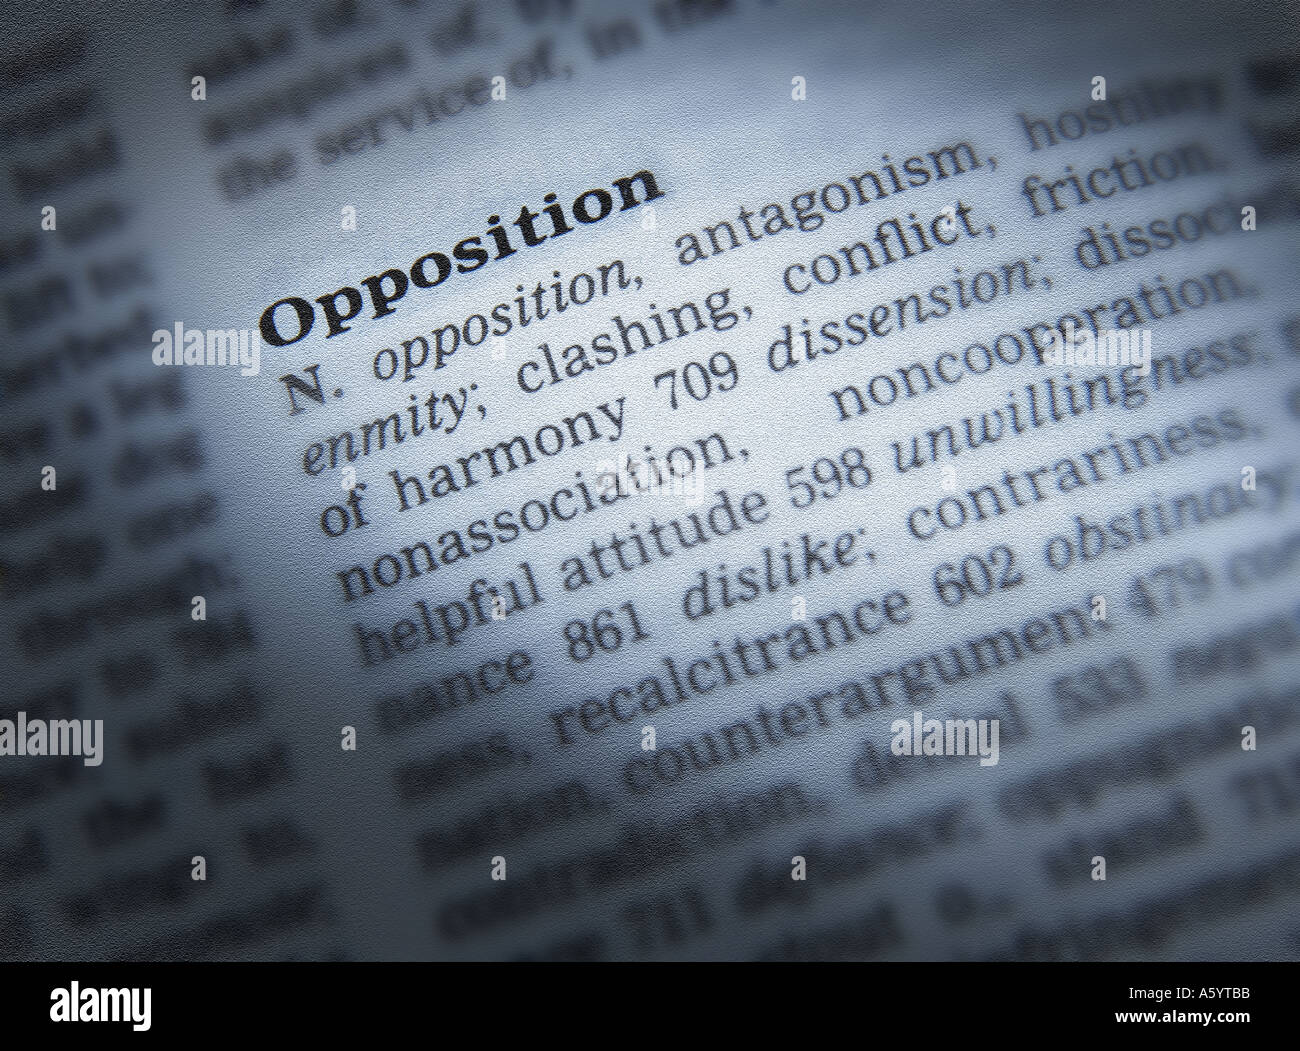 THESAURUS PAGE SHOWING DEFINITION OF WORD OPPOSITION - Stock Image